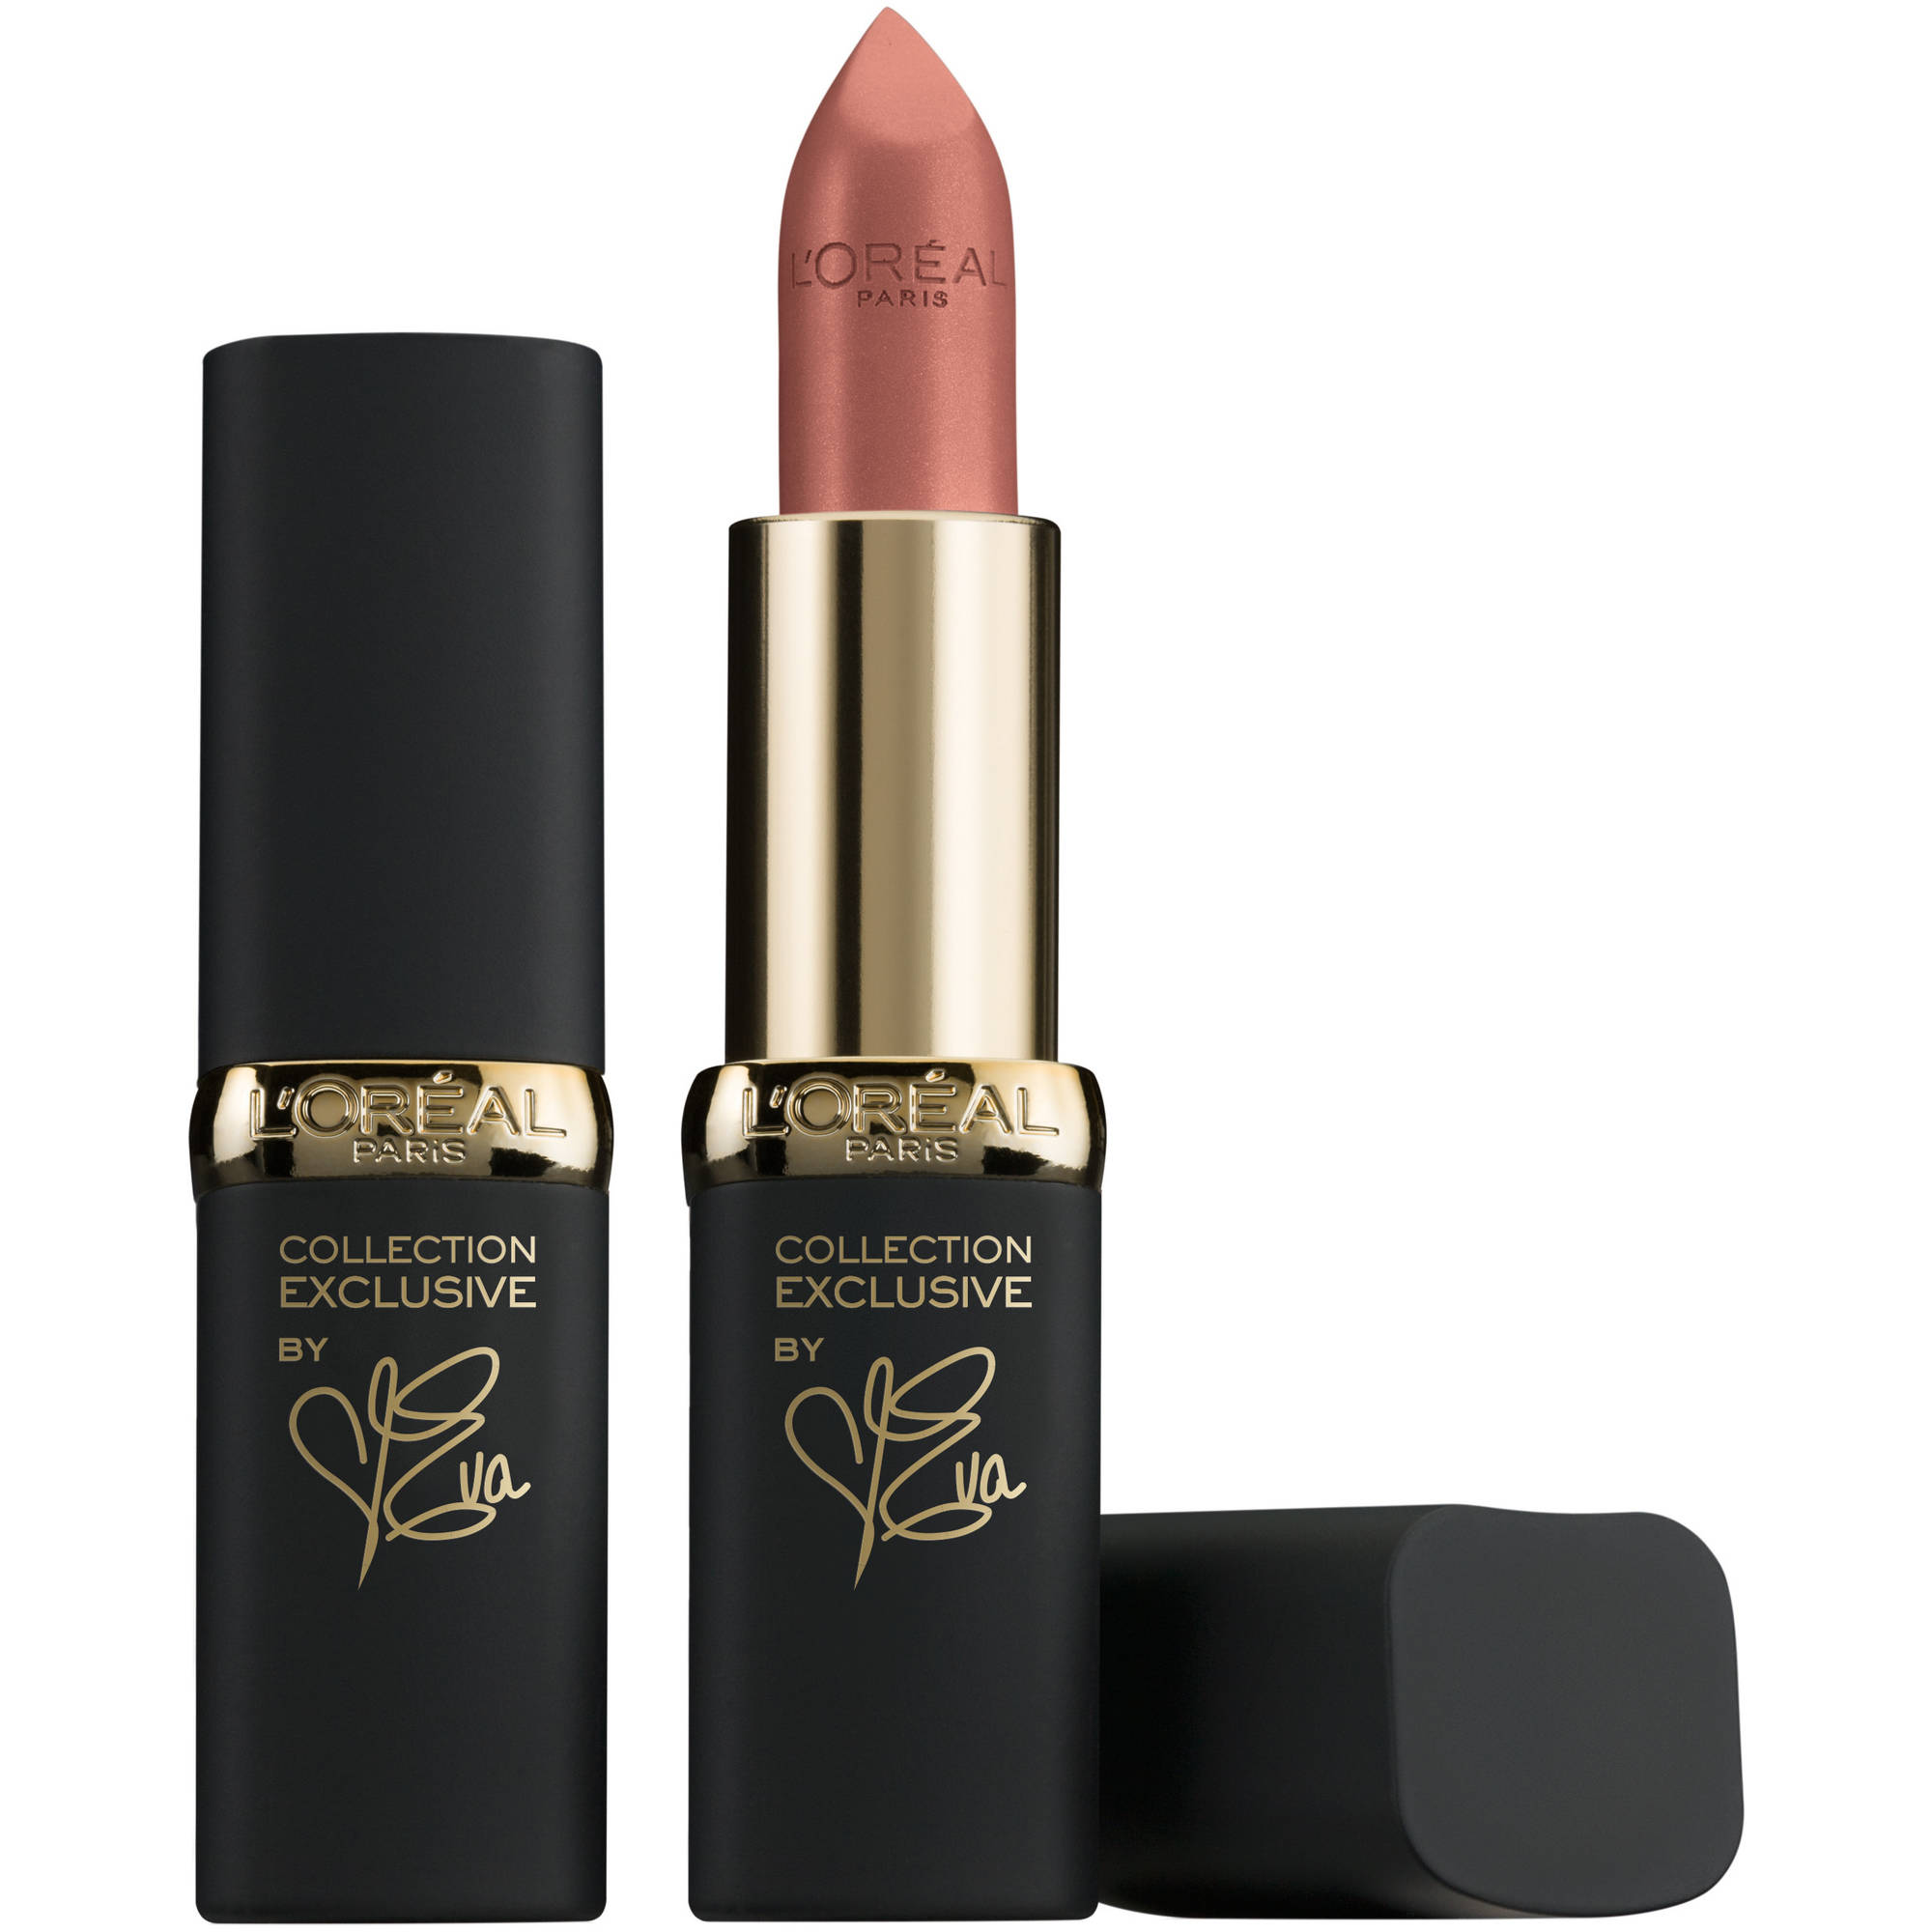 L'Oreal Paris Colour Riche Collection Exclusive Lipstick